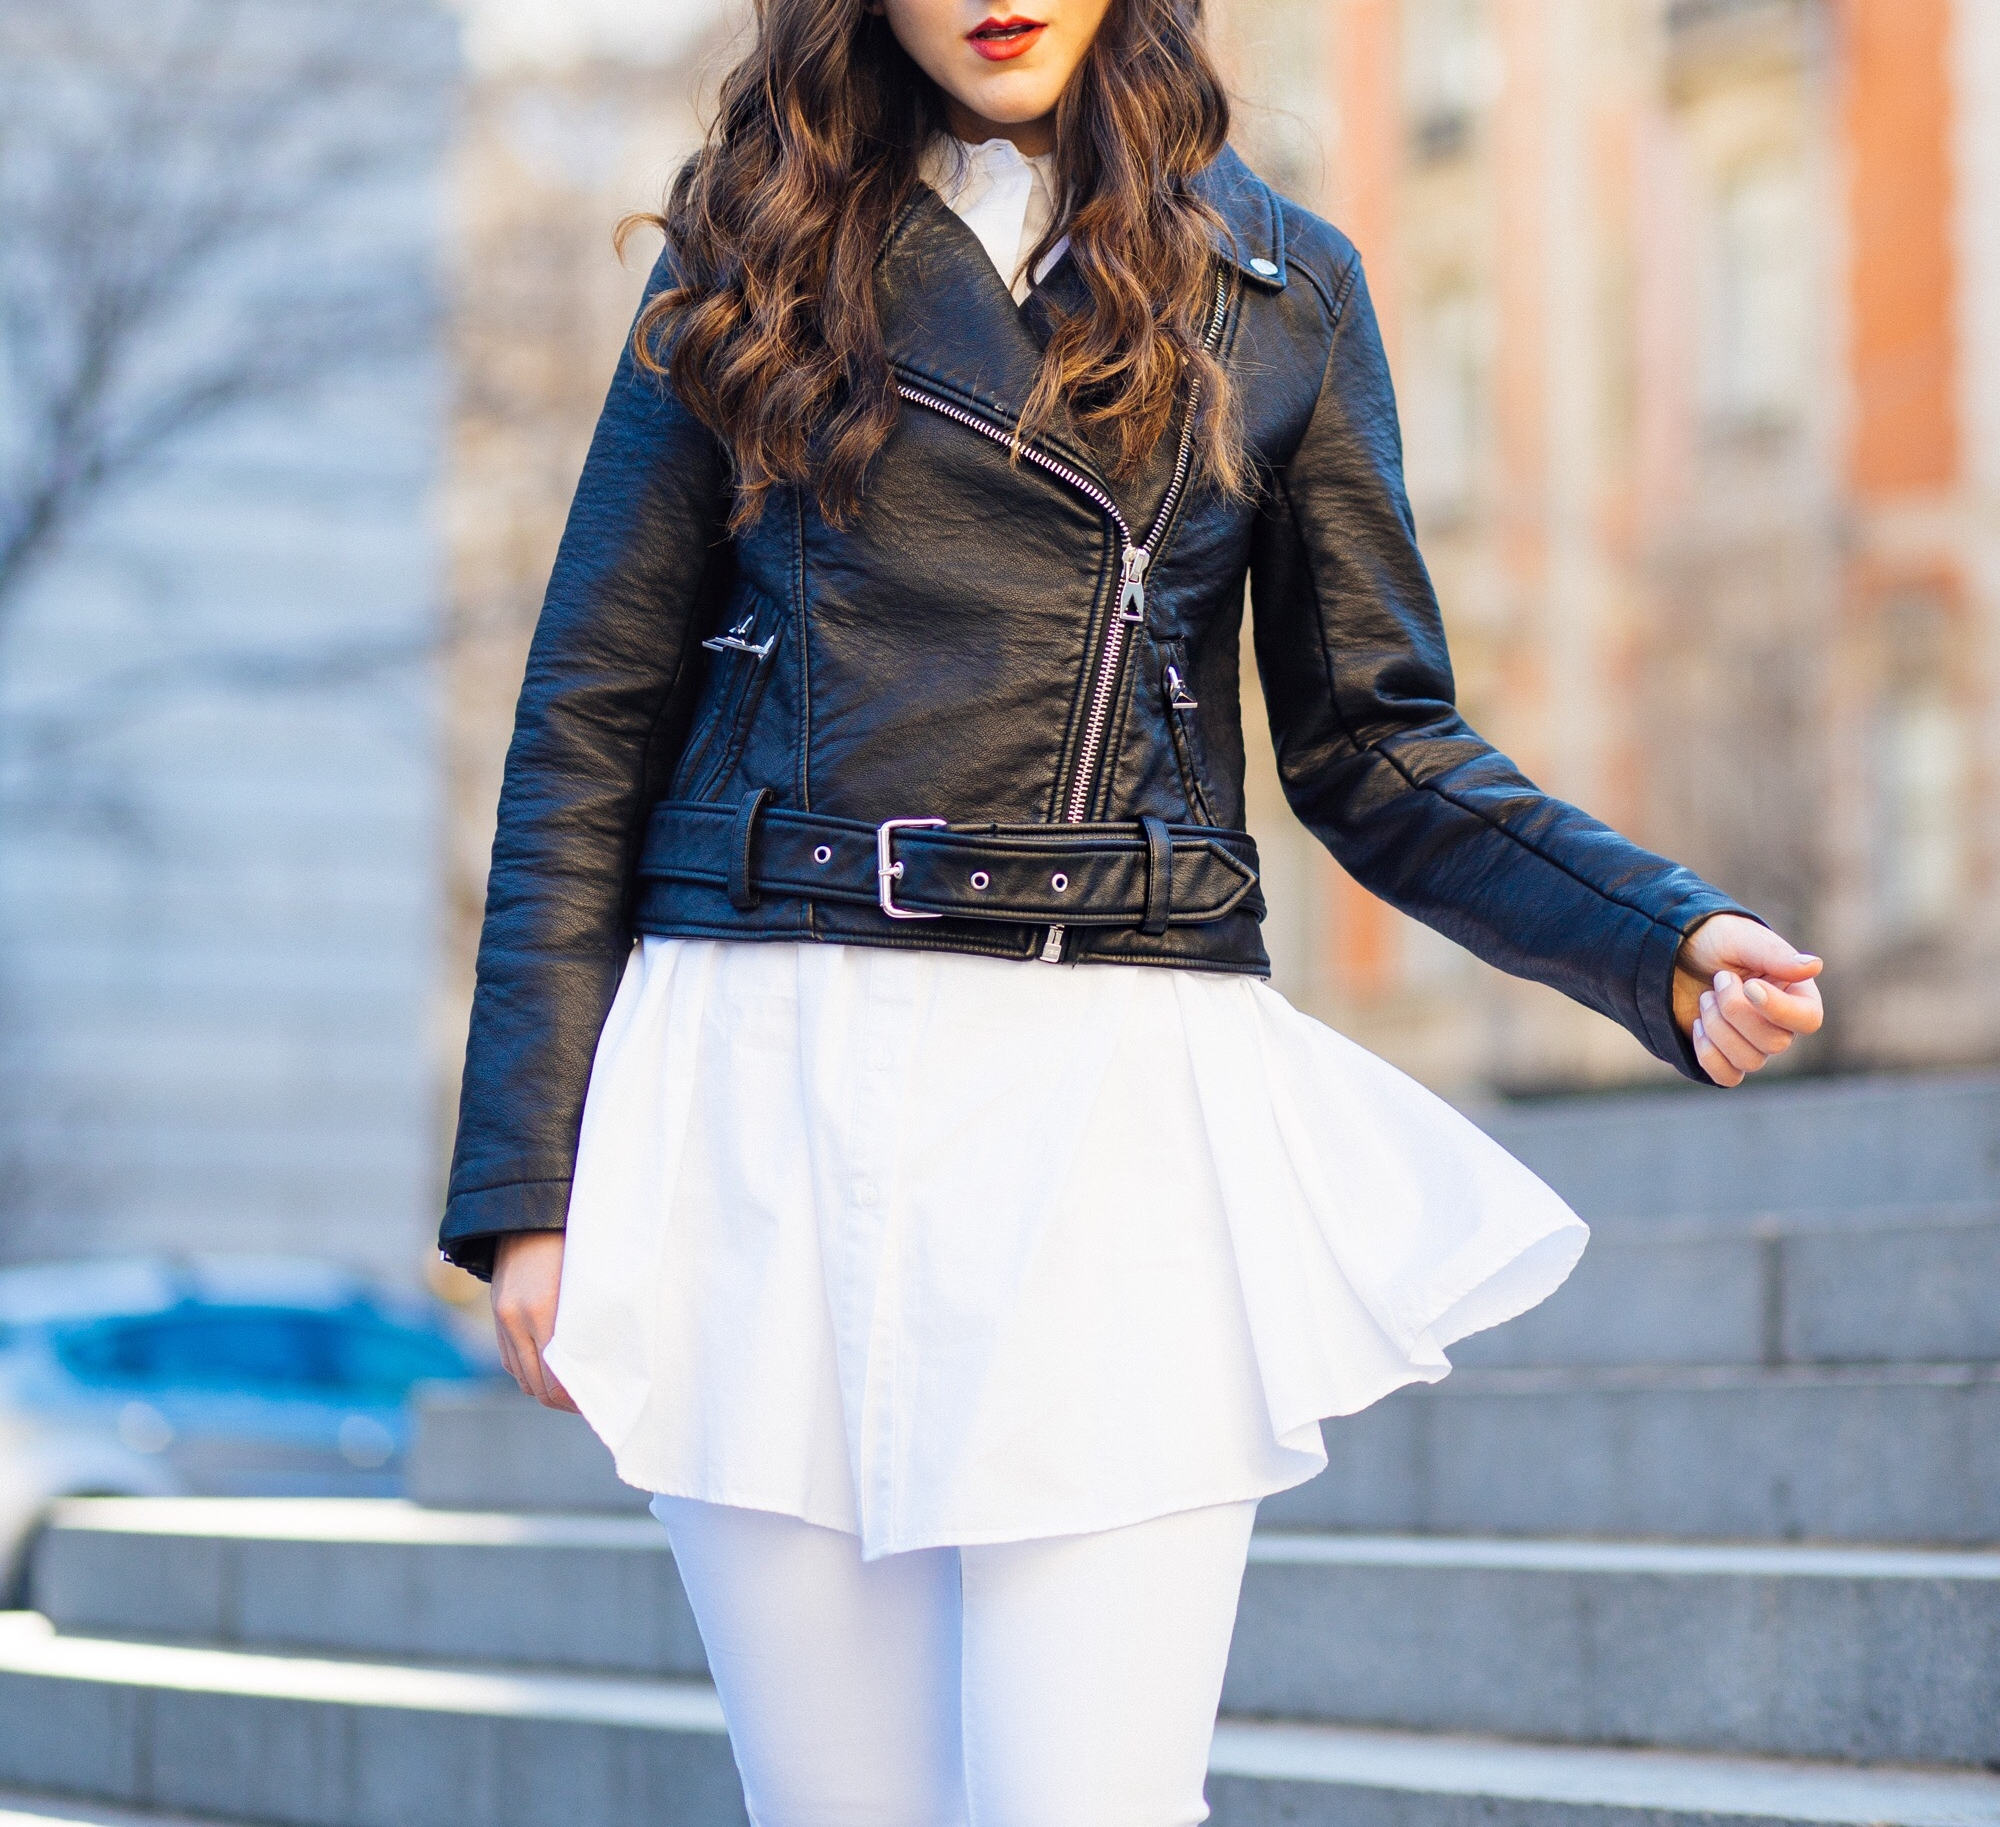 Tassel Slides + Moto Jacket What It's Really Like To Work In Fashion Esther Santer Fashion Blog NYC Street Style Blogger Outfit OOTD Trendy Leather White Pants Girl Women Hair Wear Shop  Inspo Shoes NYC Photoshoot Classic Winter Fall Look Inspiration.JPG